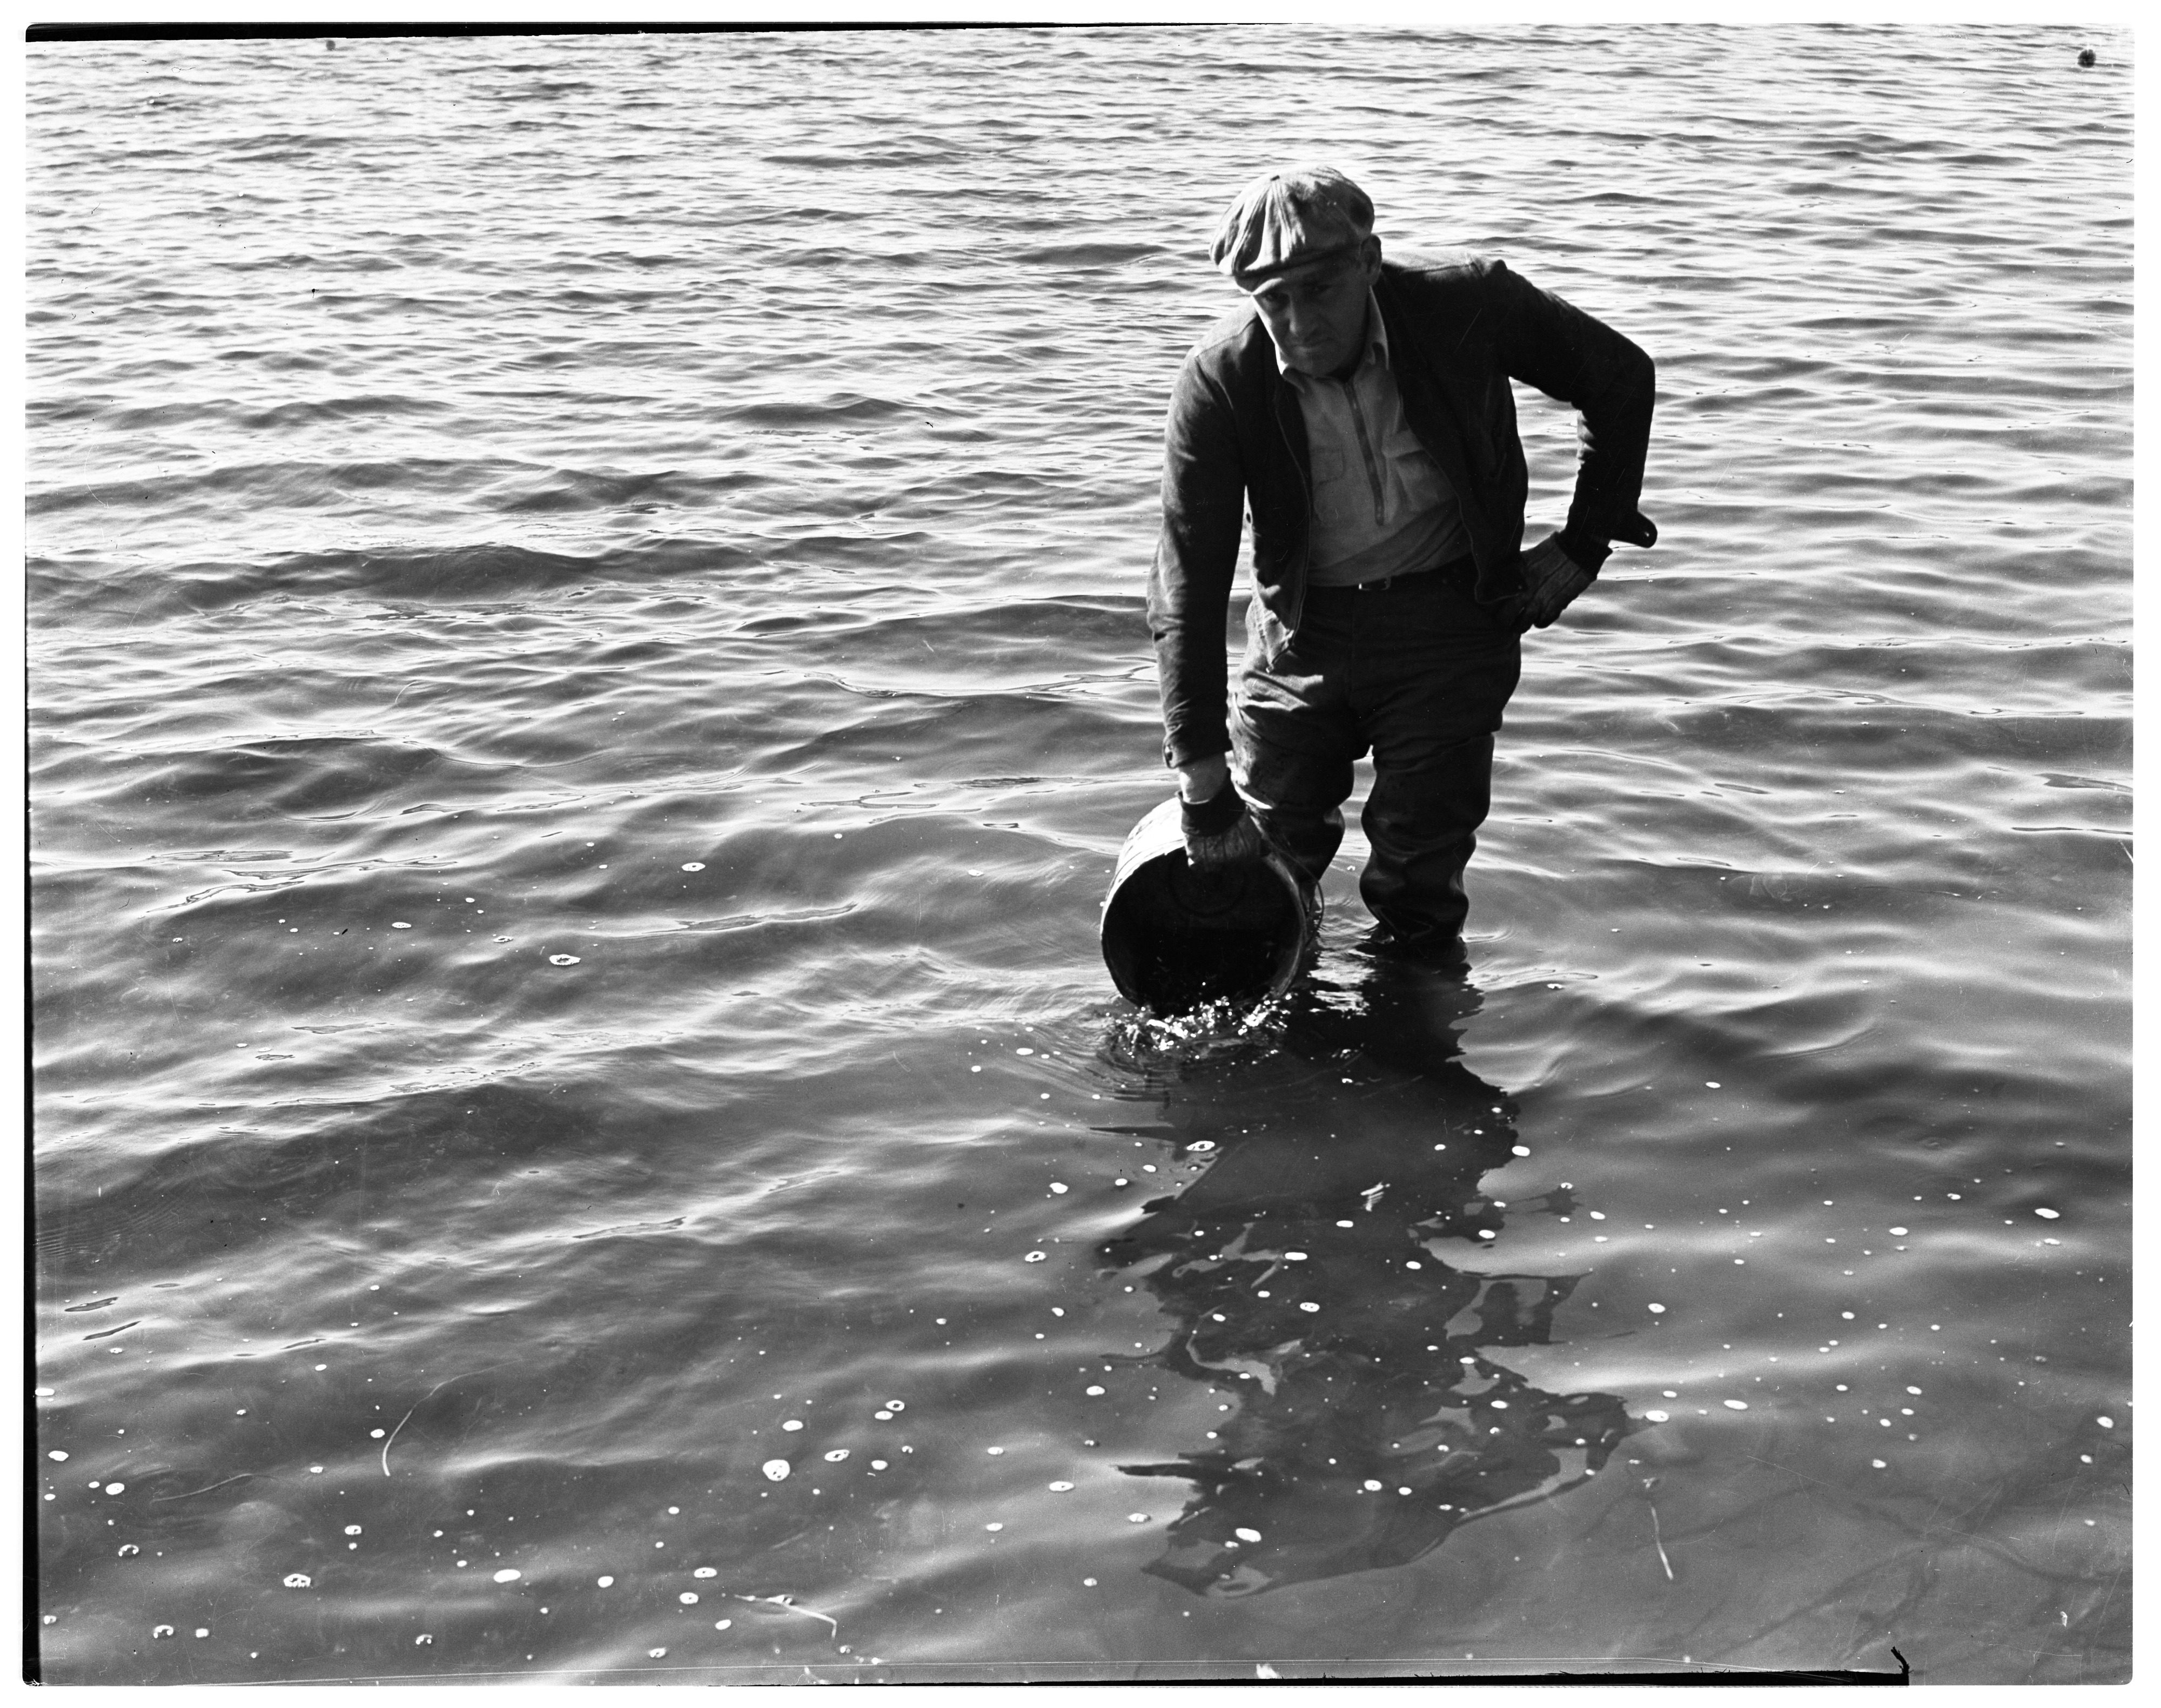 J. R. Meadows Plants Largemouth Bass In Pleasant Lake, October 1938 image